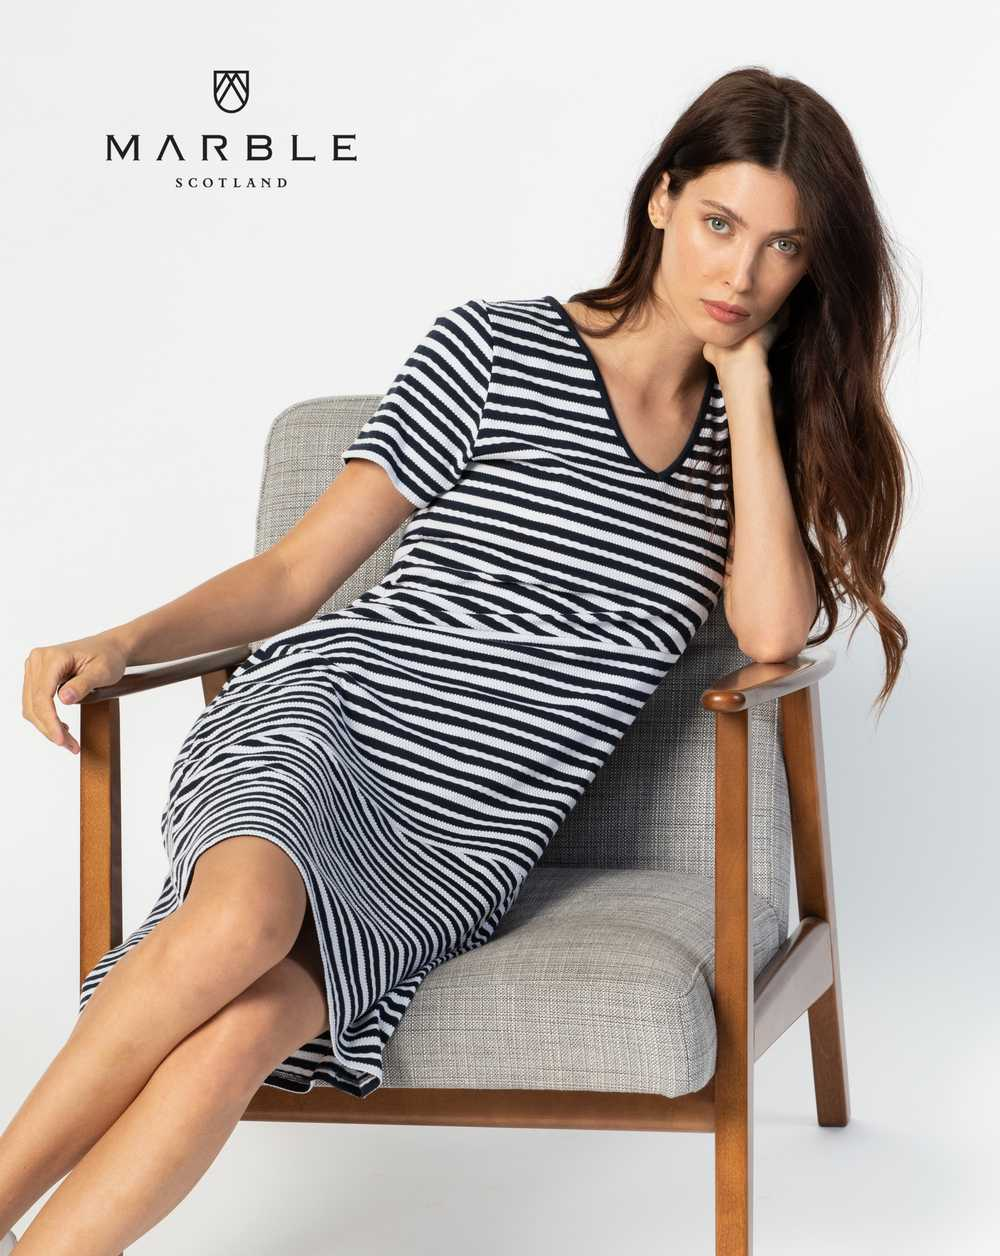 Marble 16